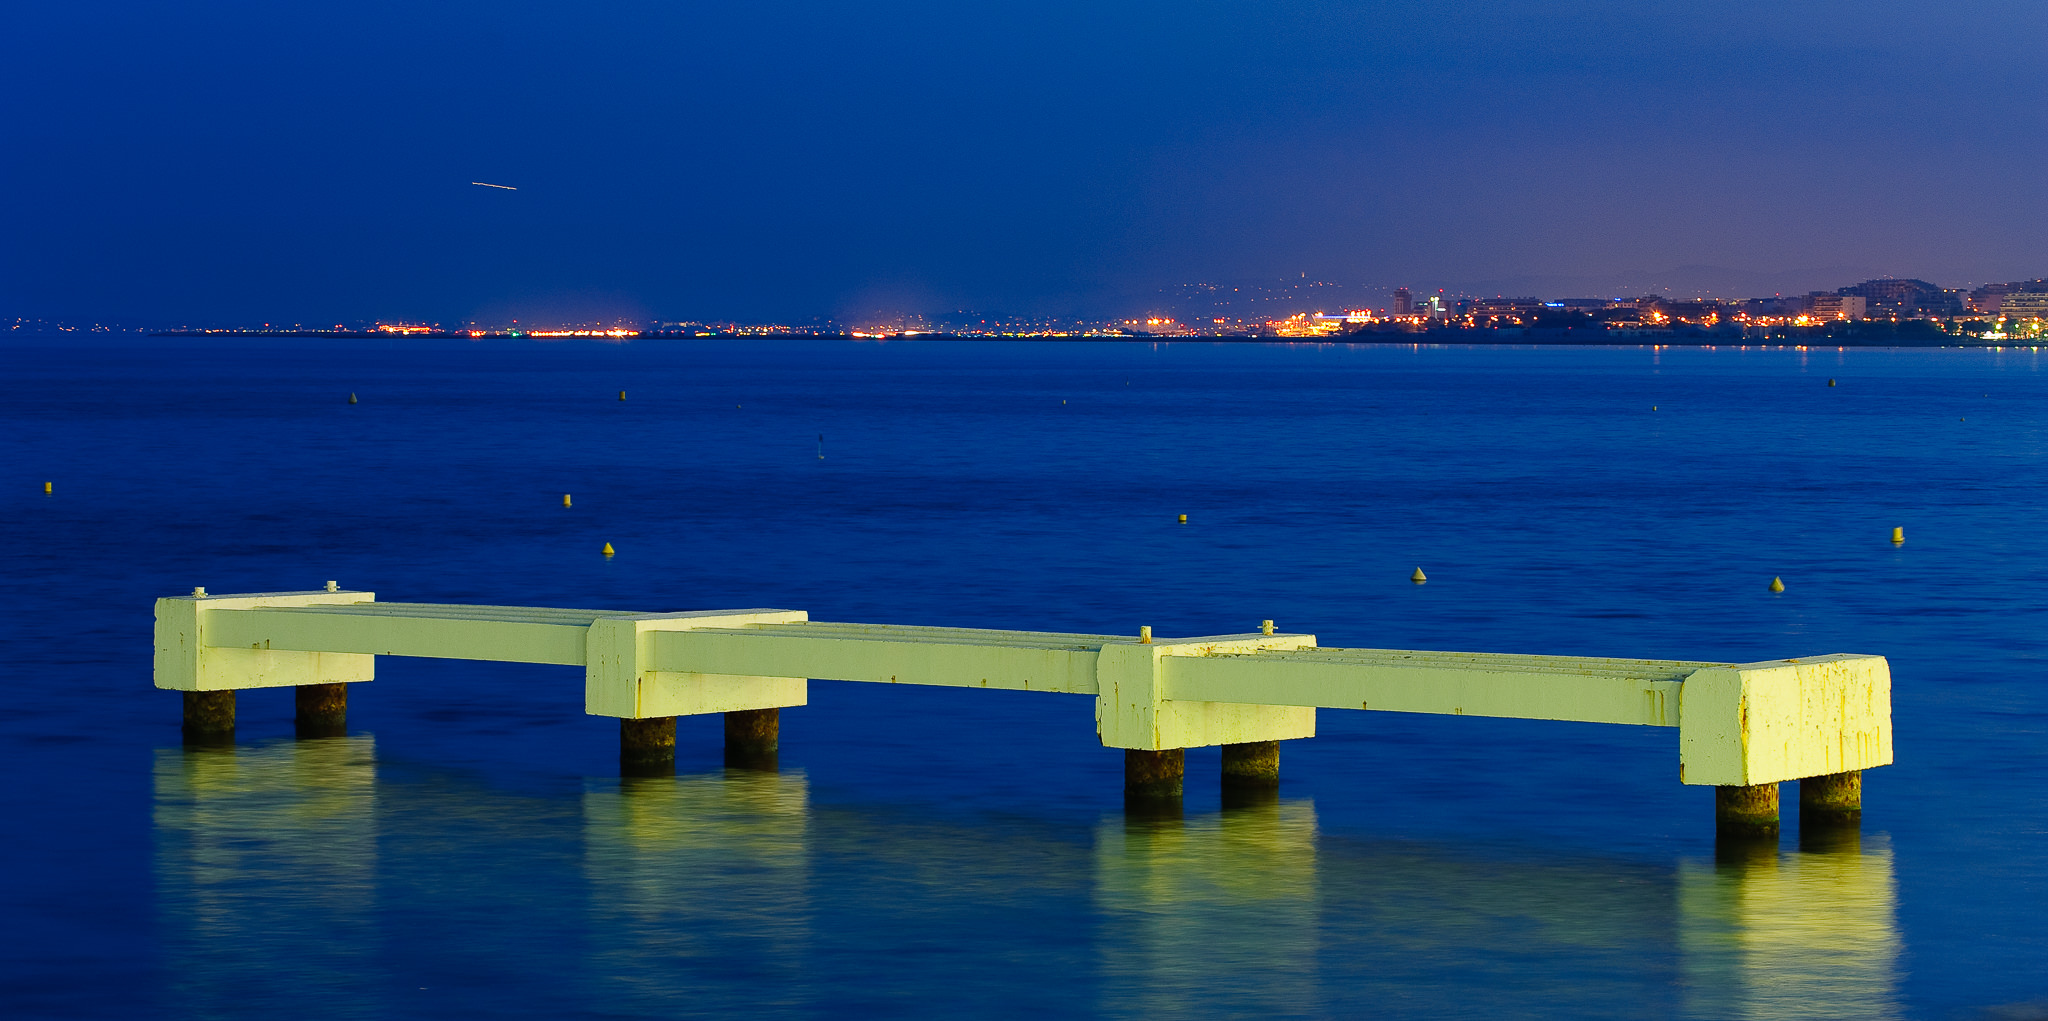 a fine art photo of a floodlit pier at night in nice france